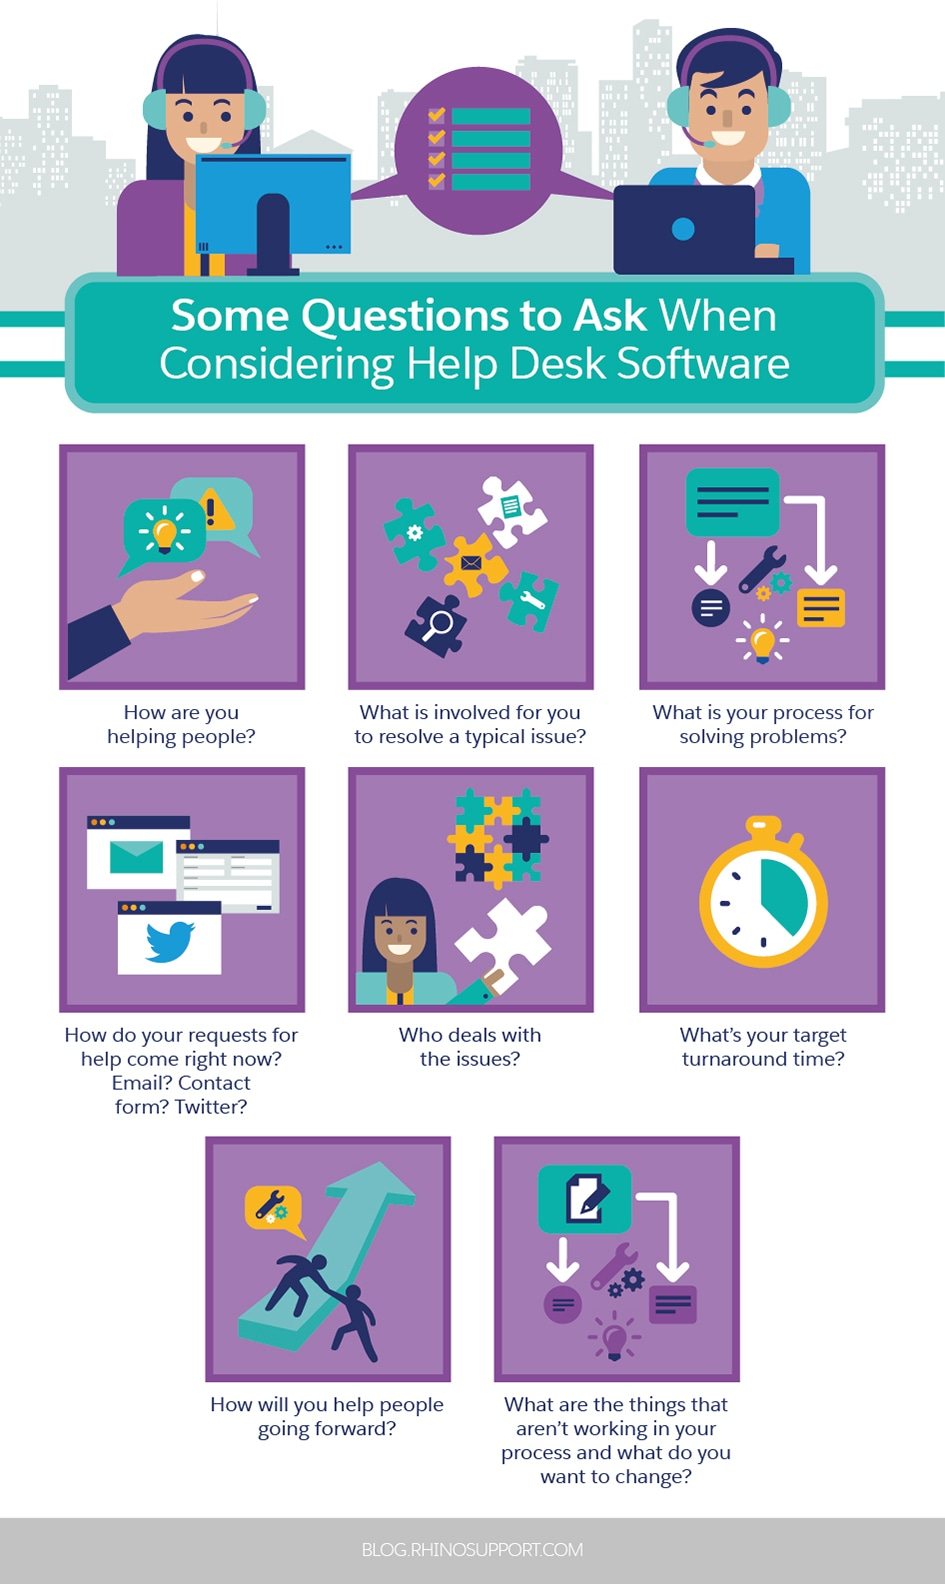 Some Questions to Ask When Considering Help Desk Software